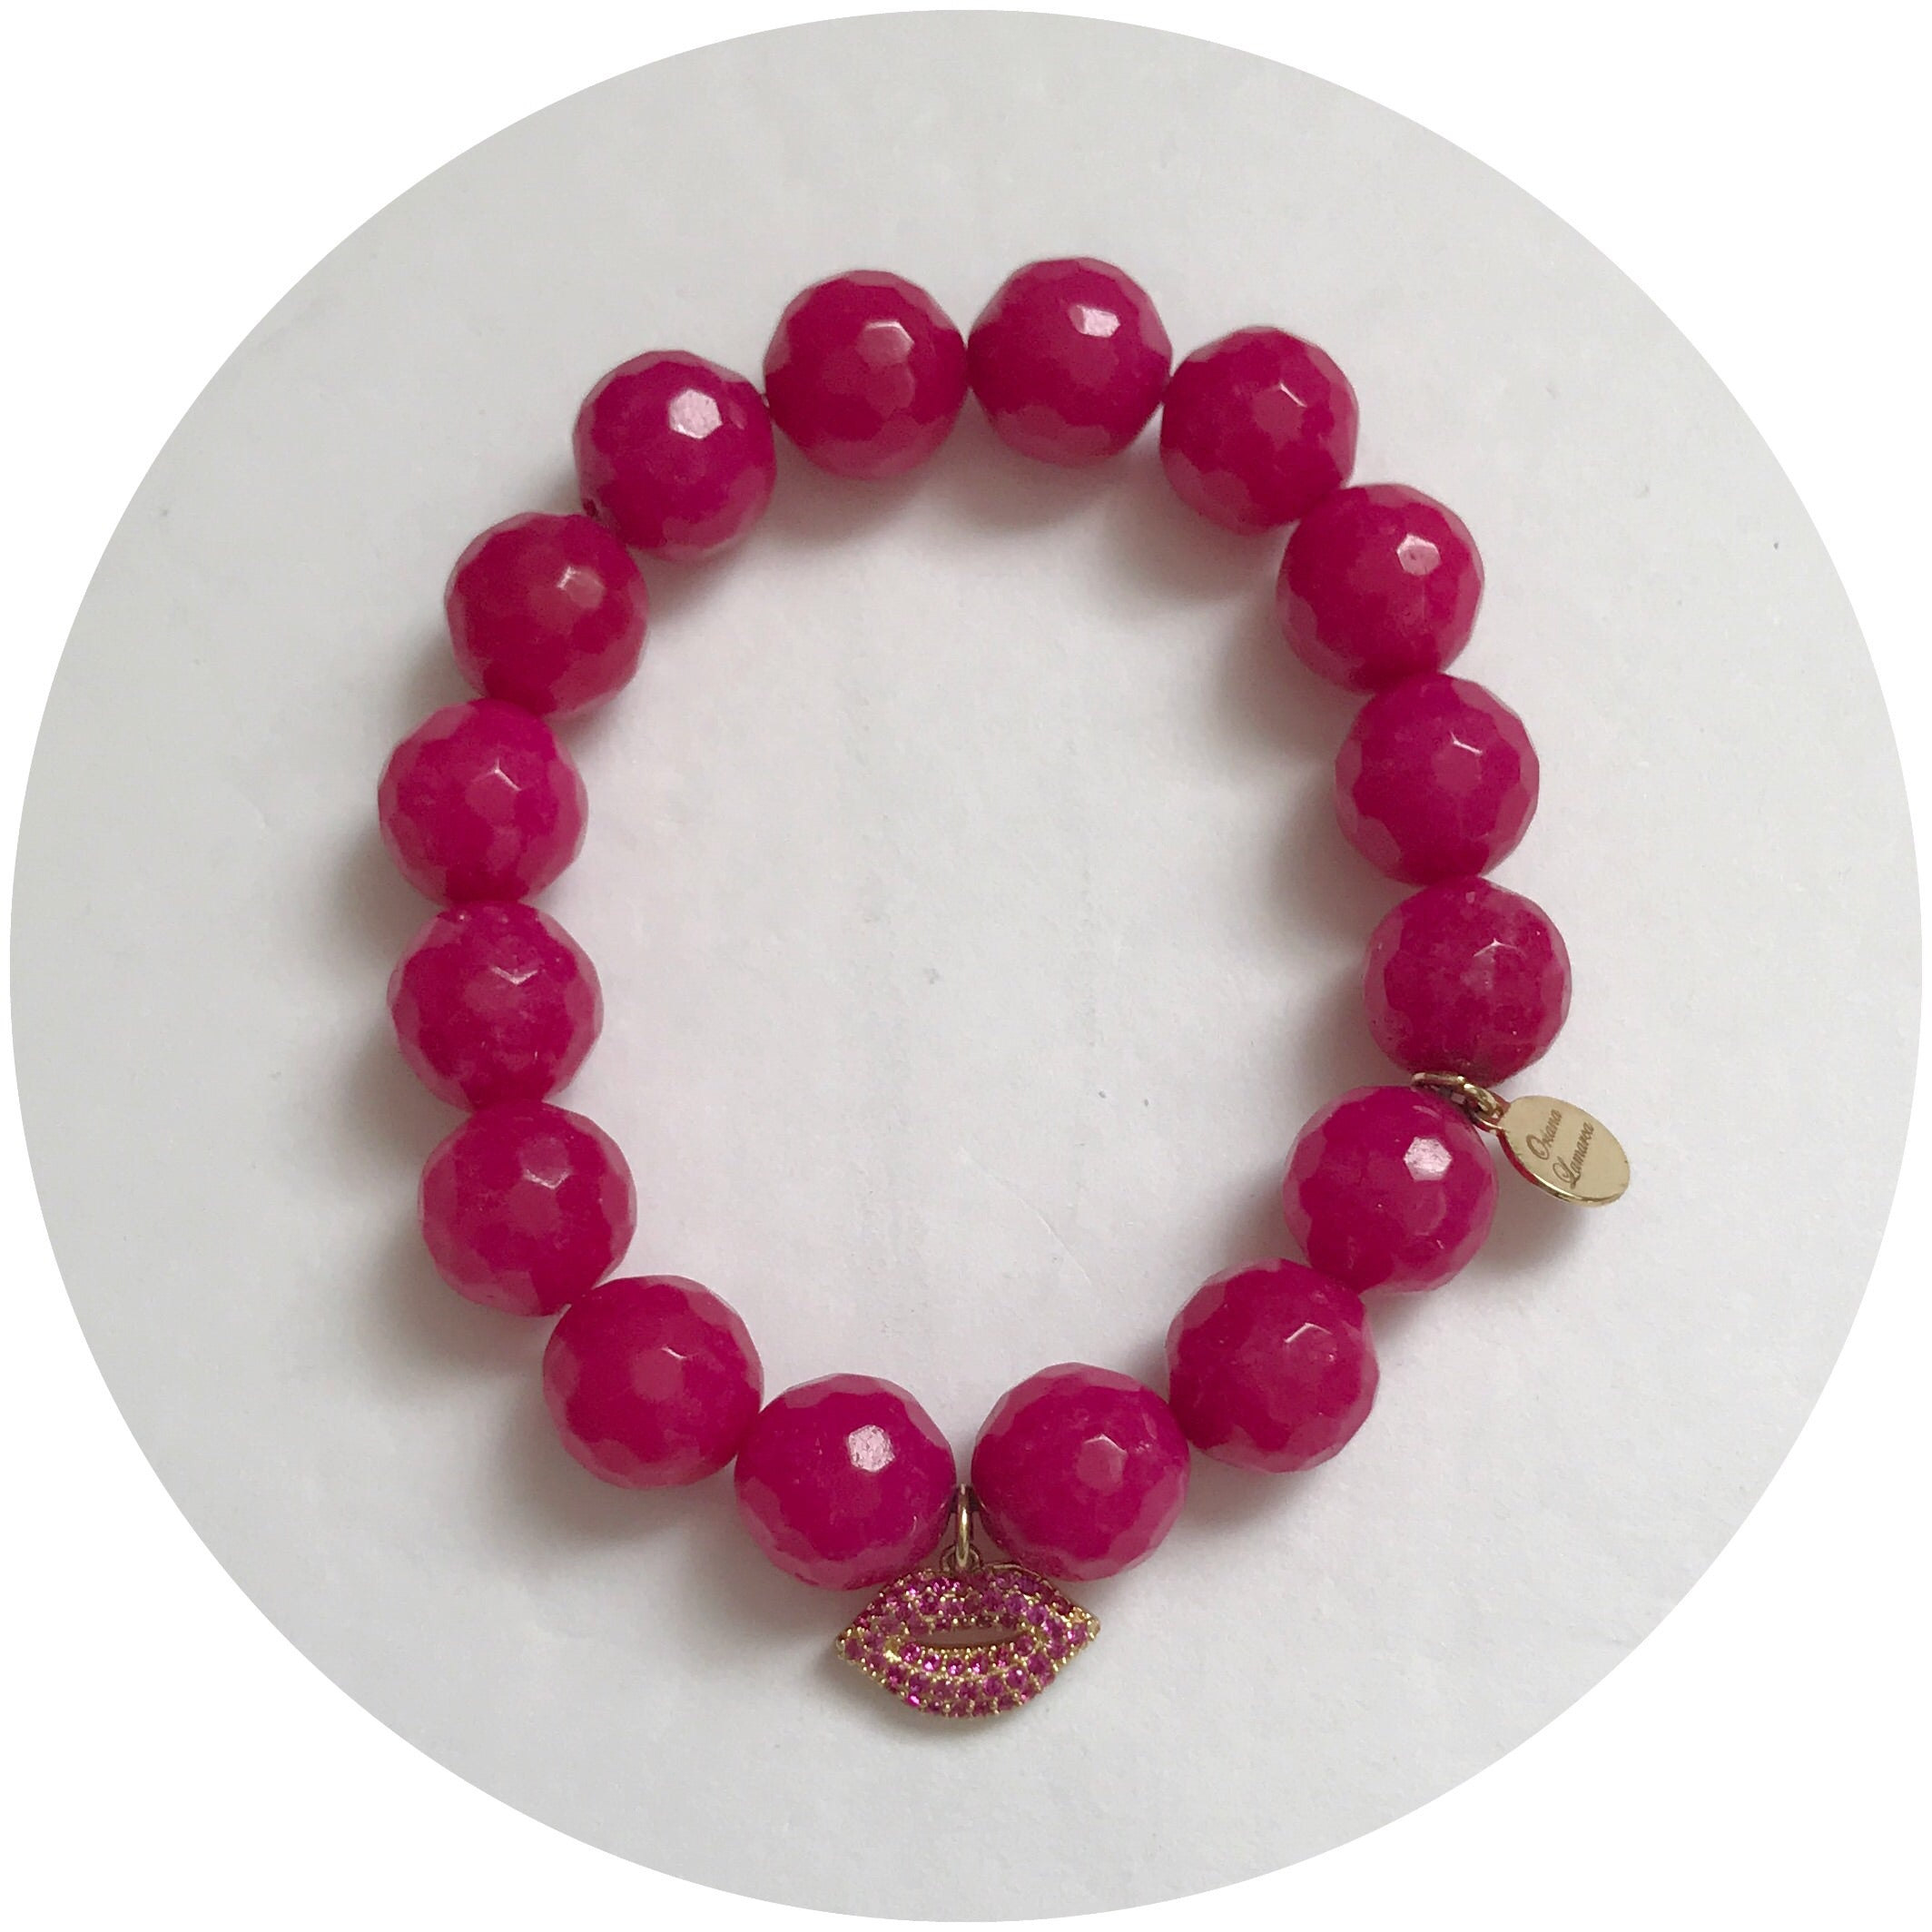 Magenta Jade with Pavé Lips Pendant